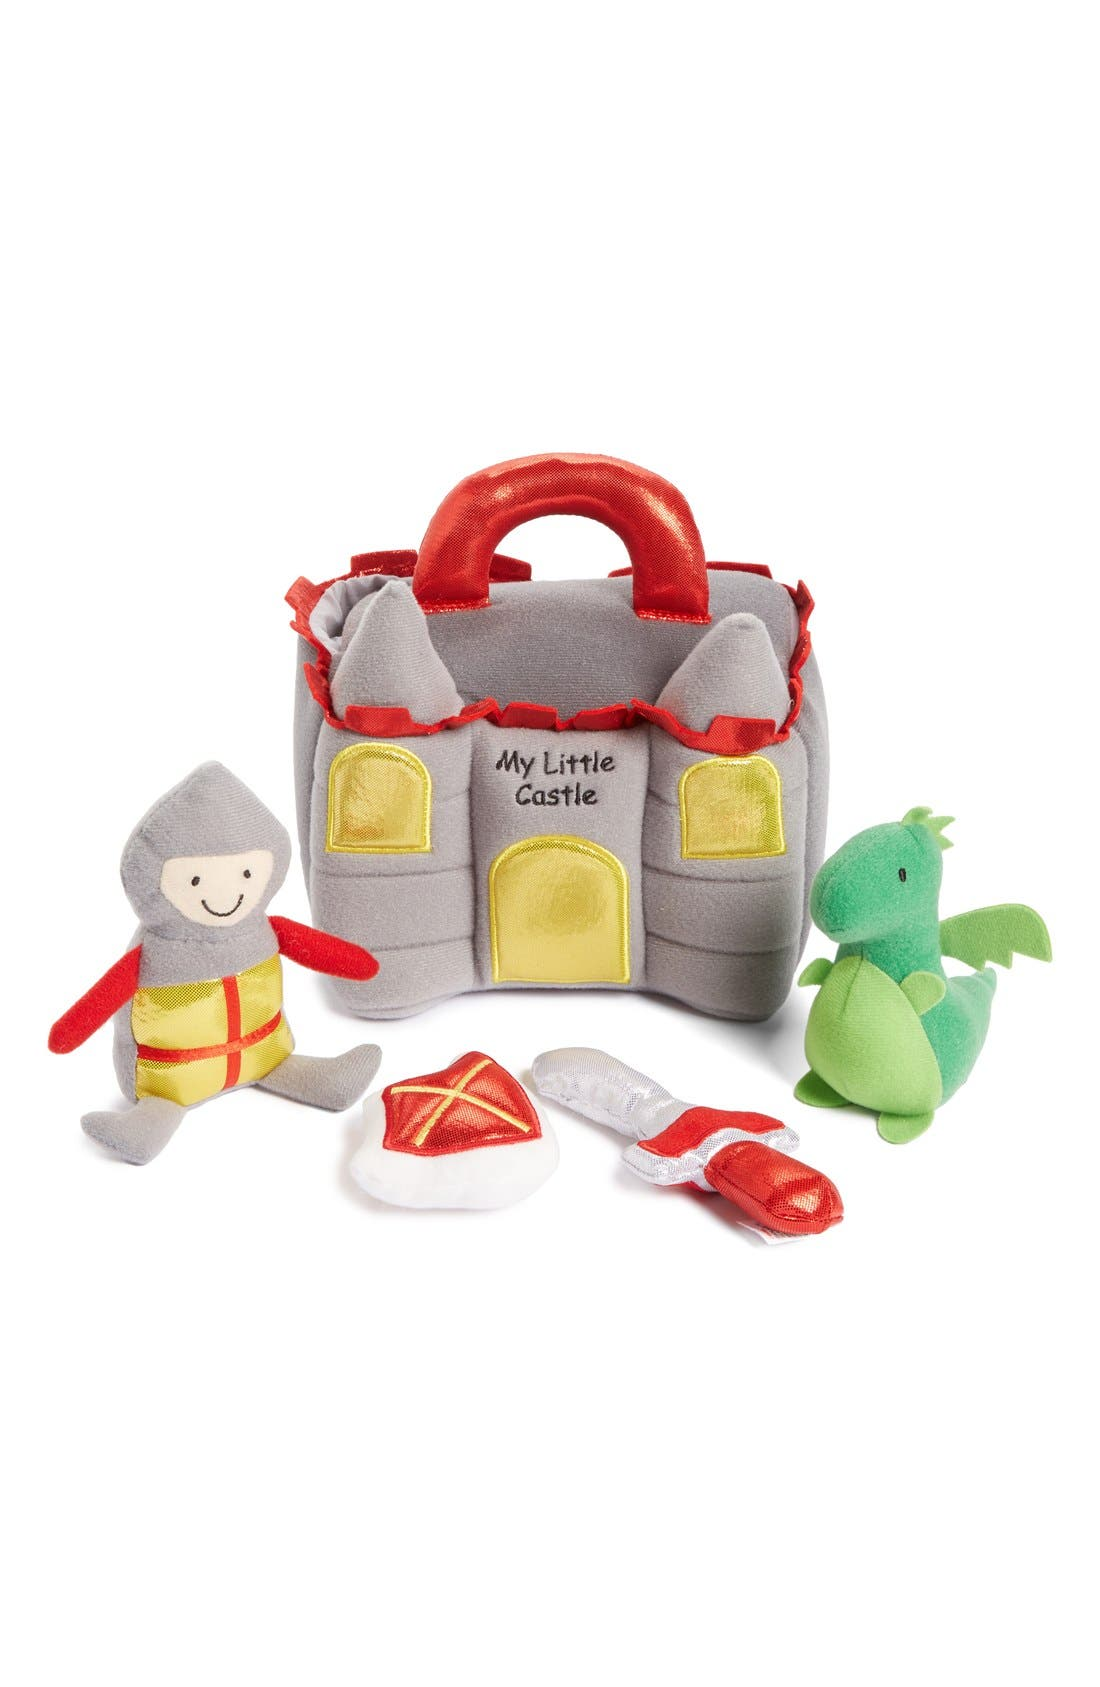 BABY GUND 'My Little Castle' Play Set